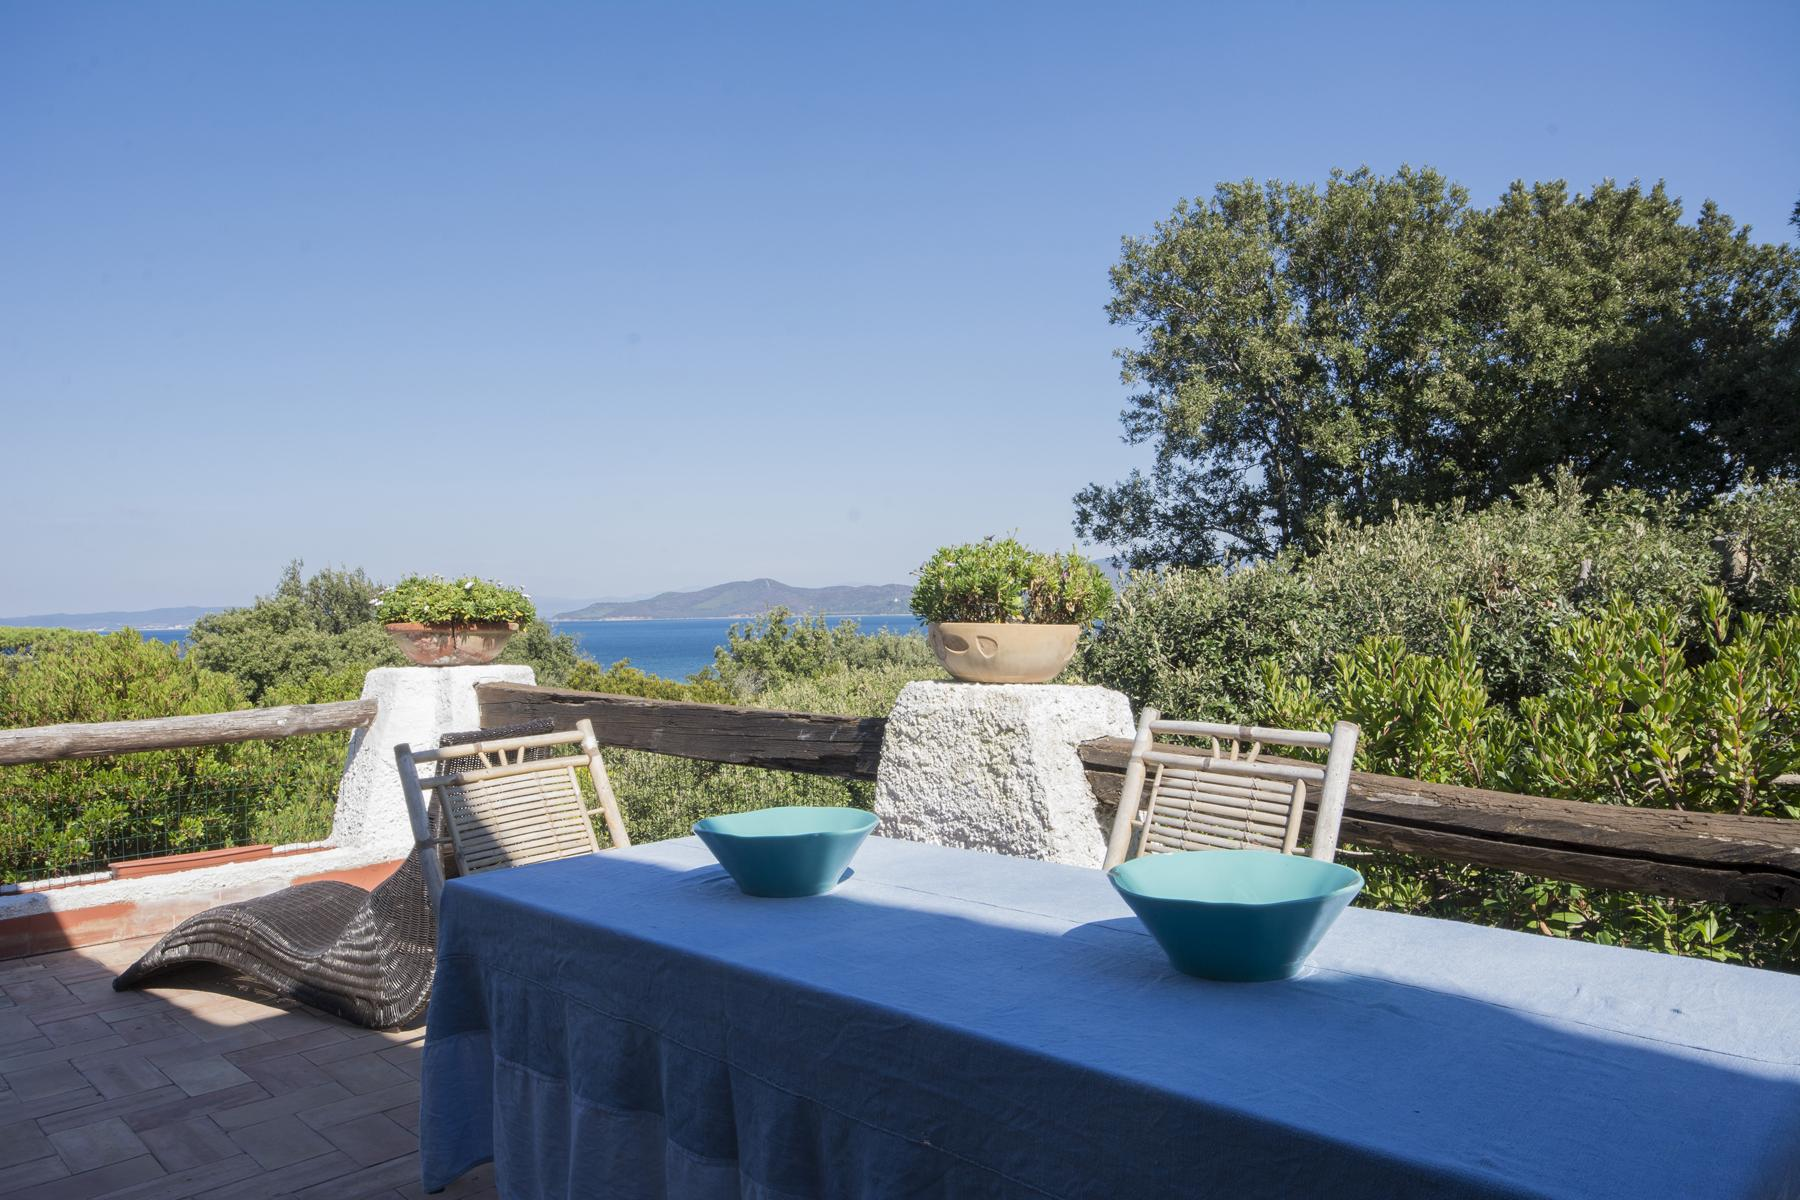 Charming Villa with breathtaking view in Punta Ala - 20